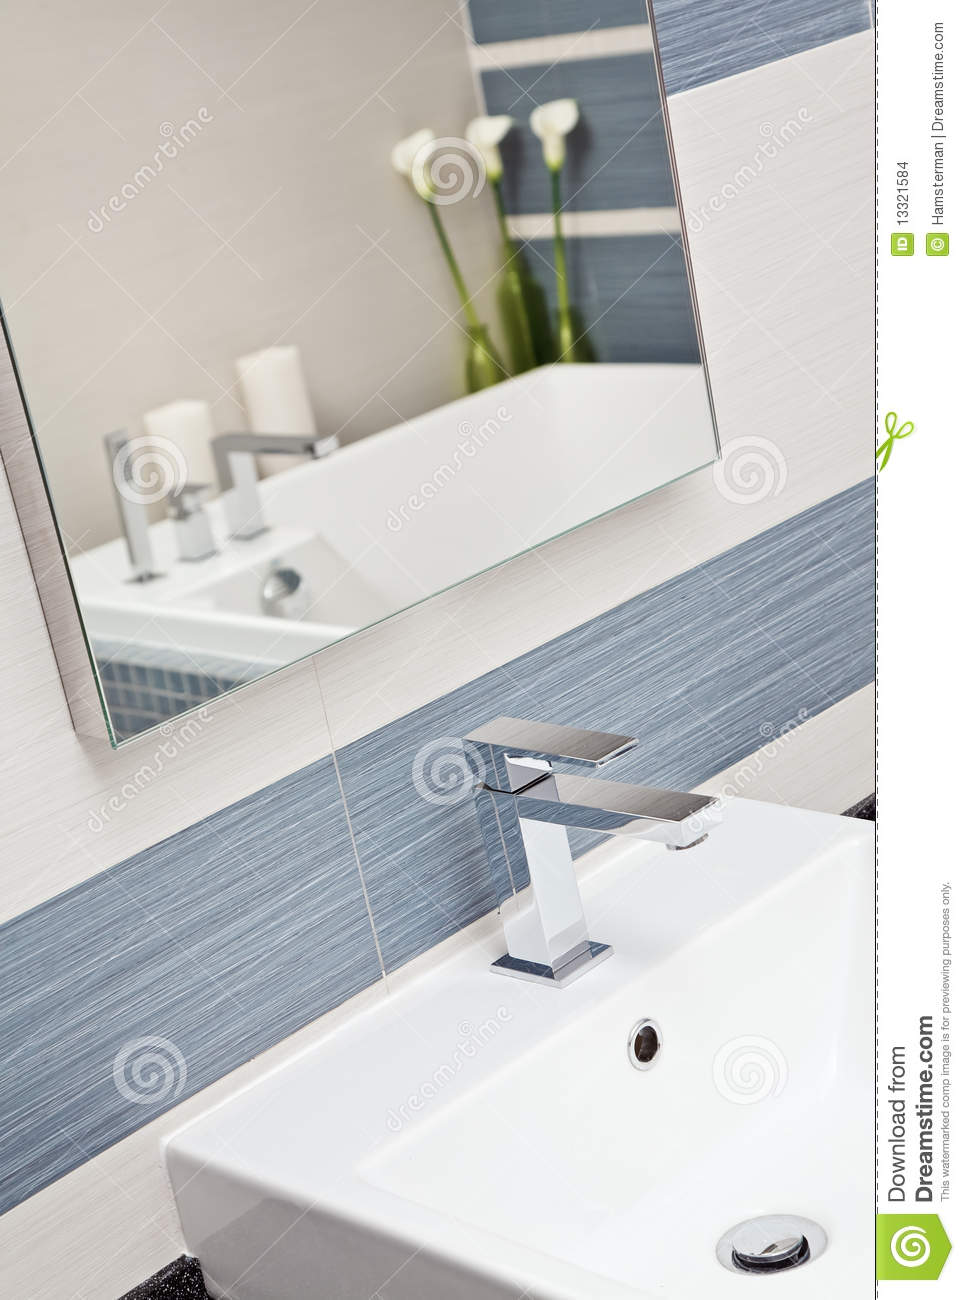 Baños Azules Modernos:Bathrooms with Gray and Blue Tones